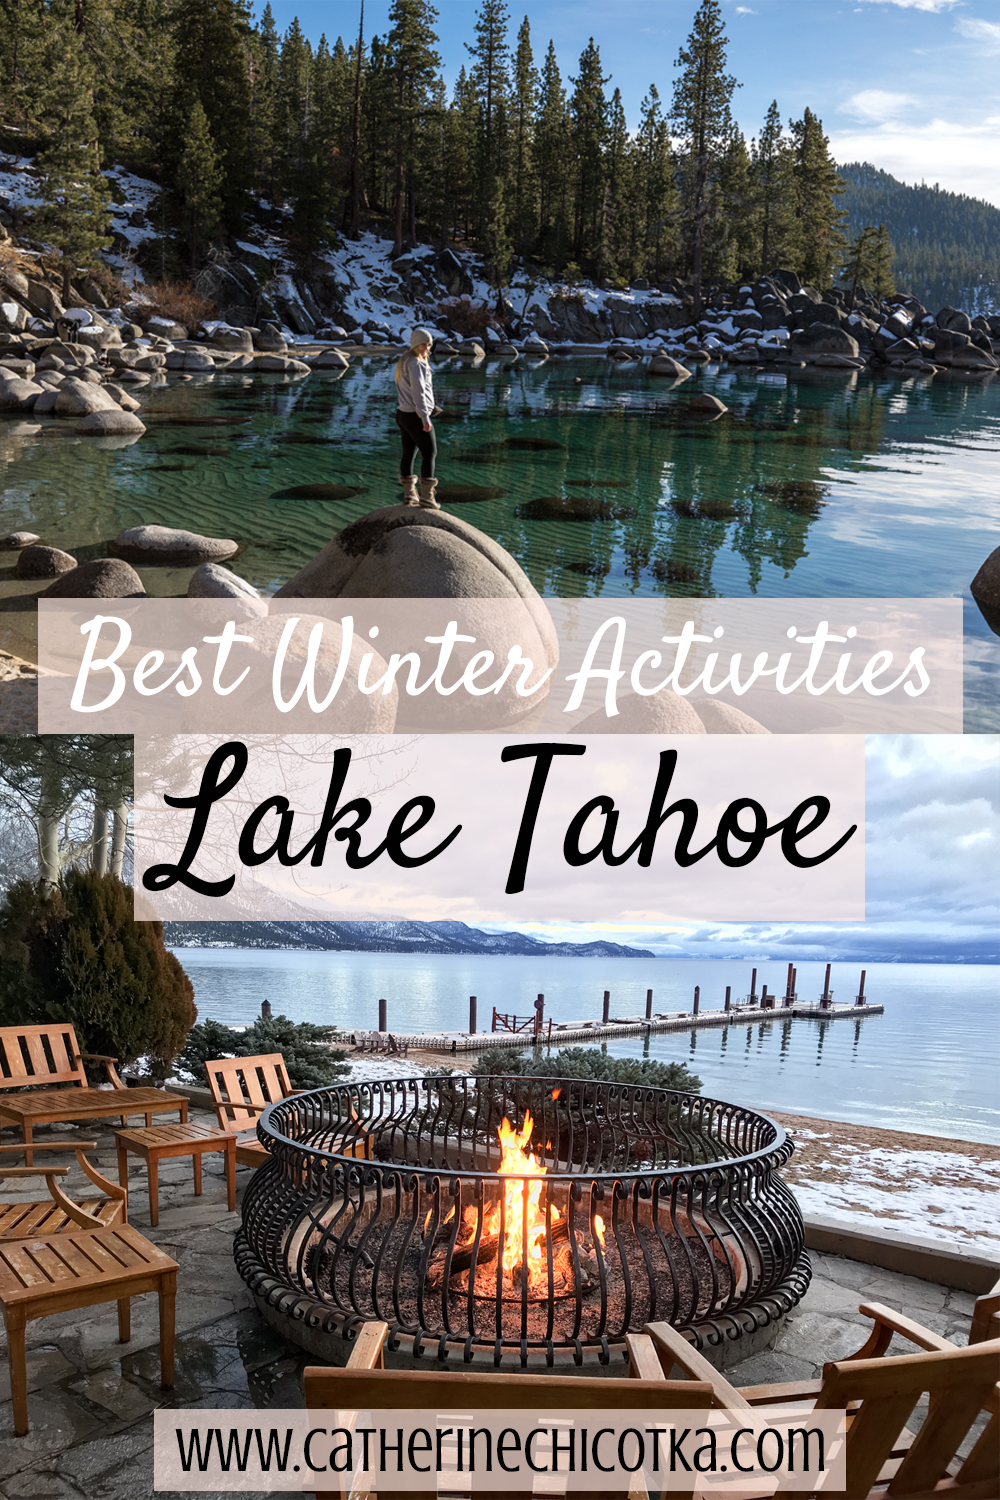 Best Winter Activities in Lake Tahoe | Catherine Chicotka